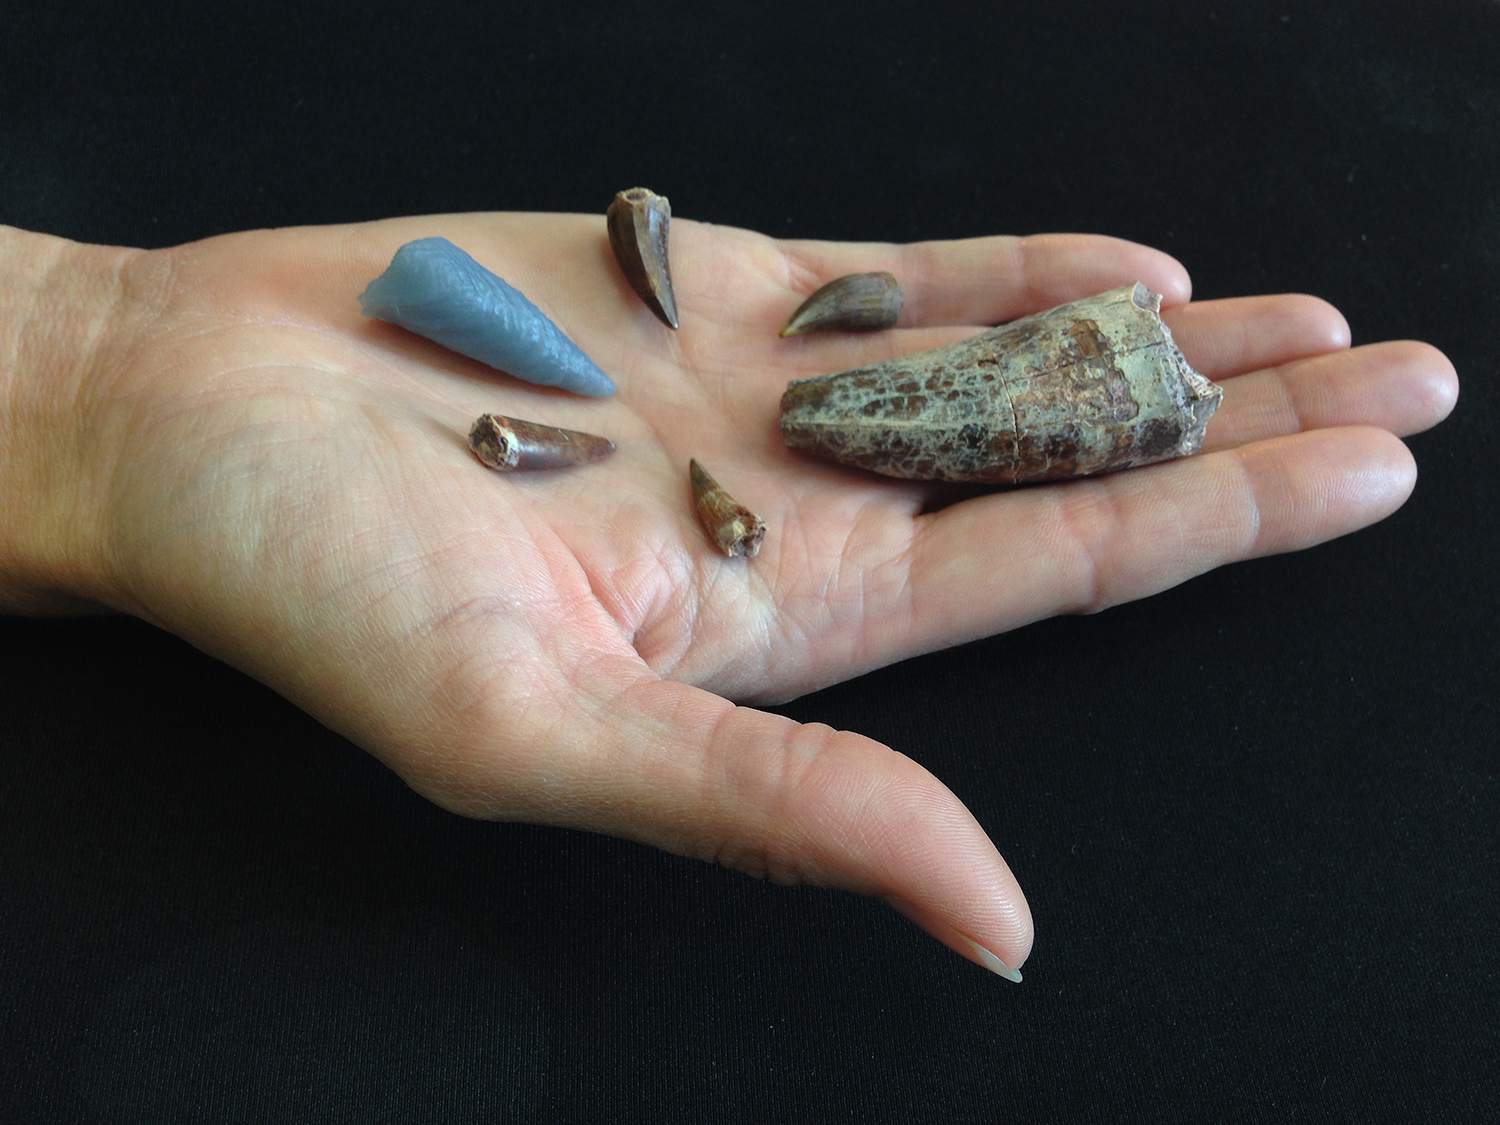 Phytosaur teeth